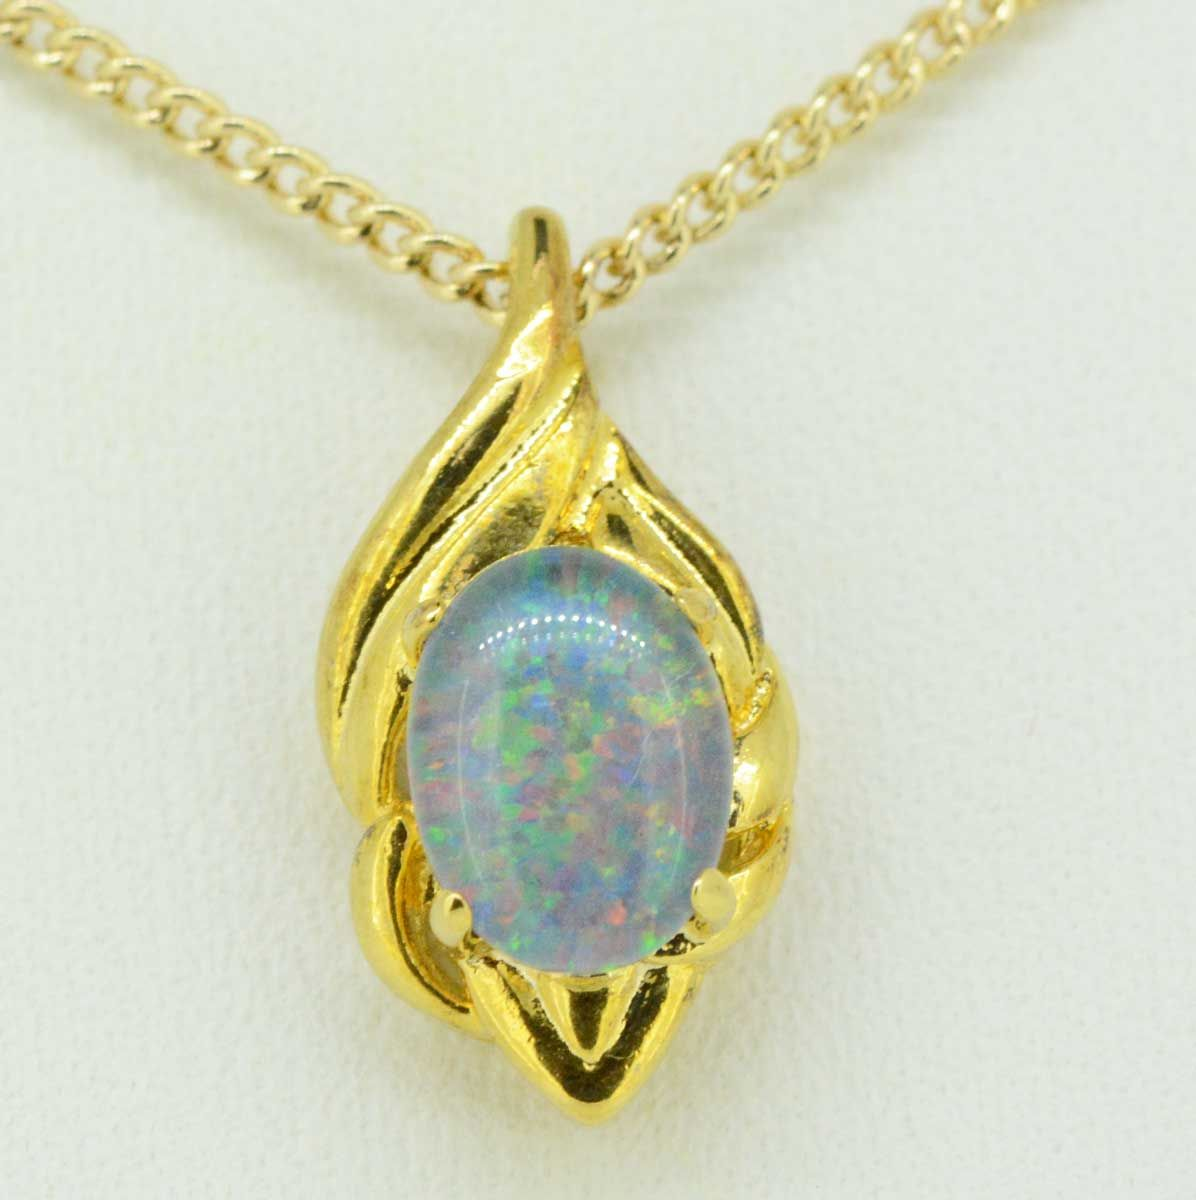 Gold plated triplet opal pendant 8mmx6mm